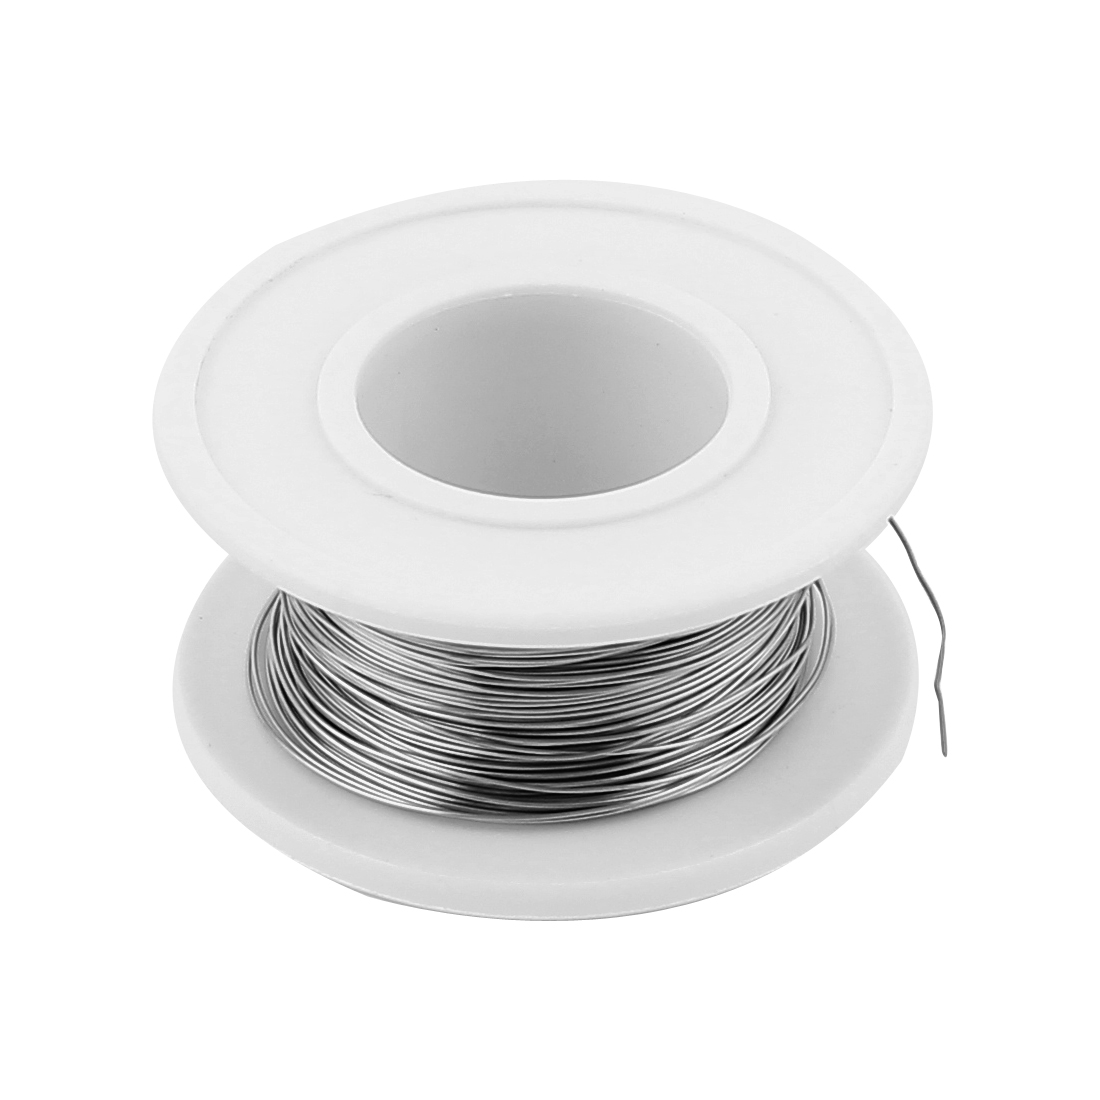 Nichrome 80 0.3mm 28 Gauge AWG 115ft Roll 4.87 Ohms/ft Heater Wire